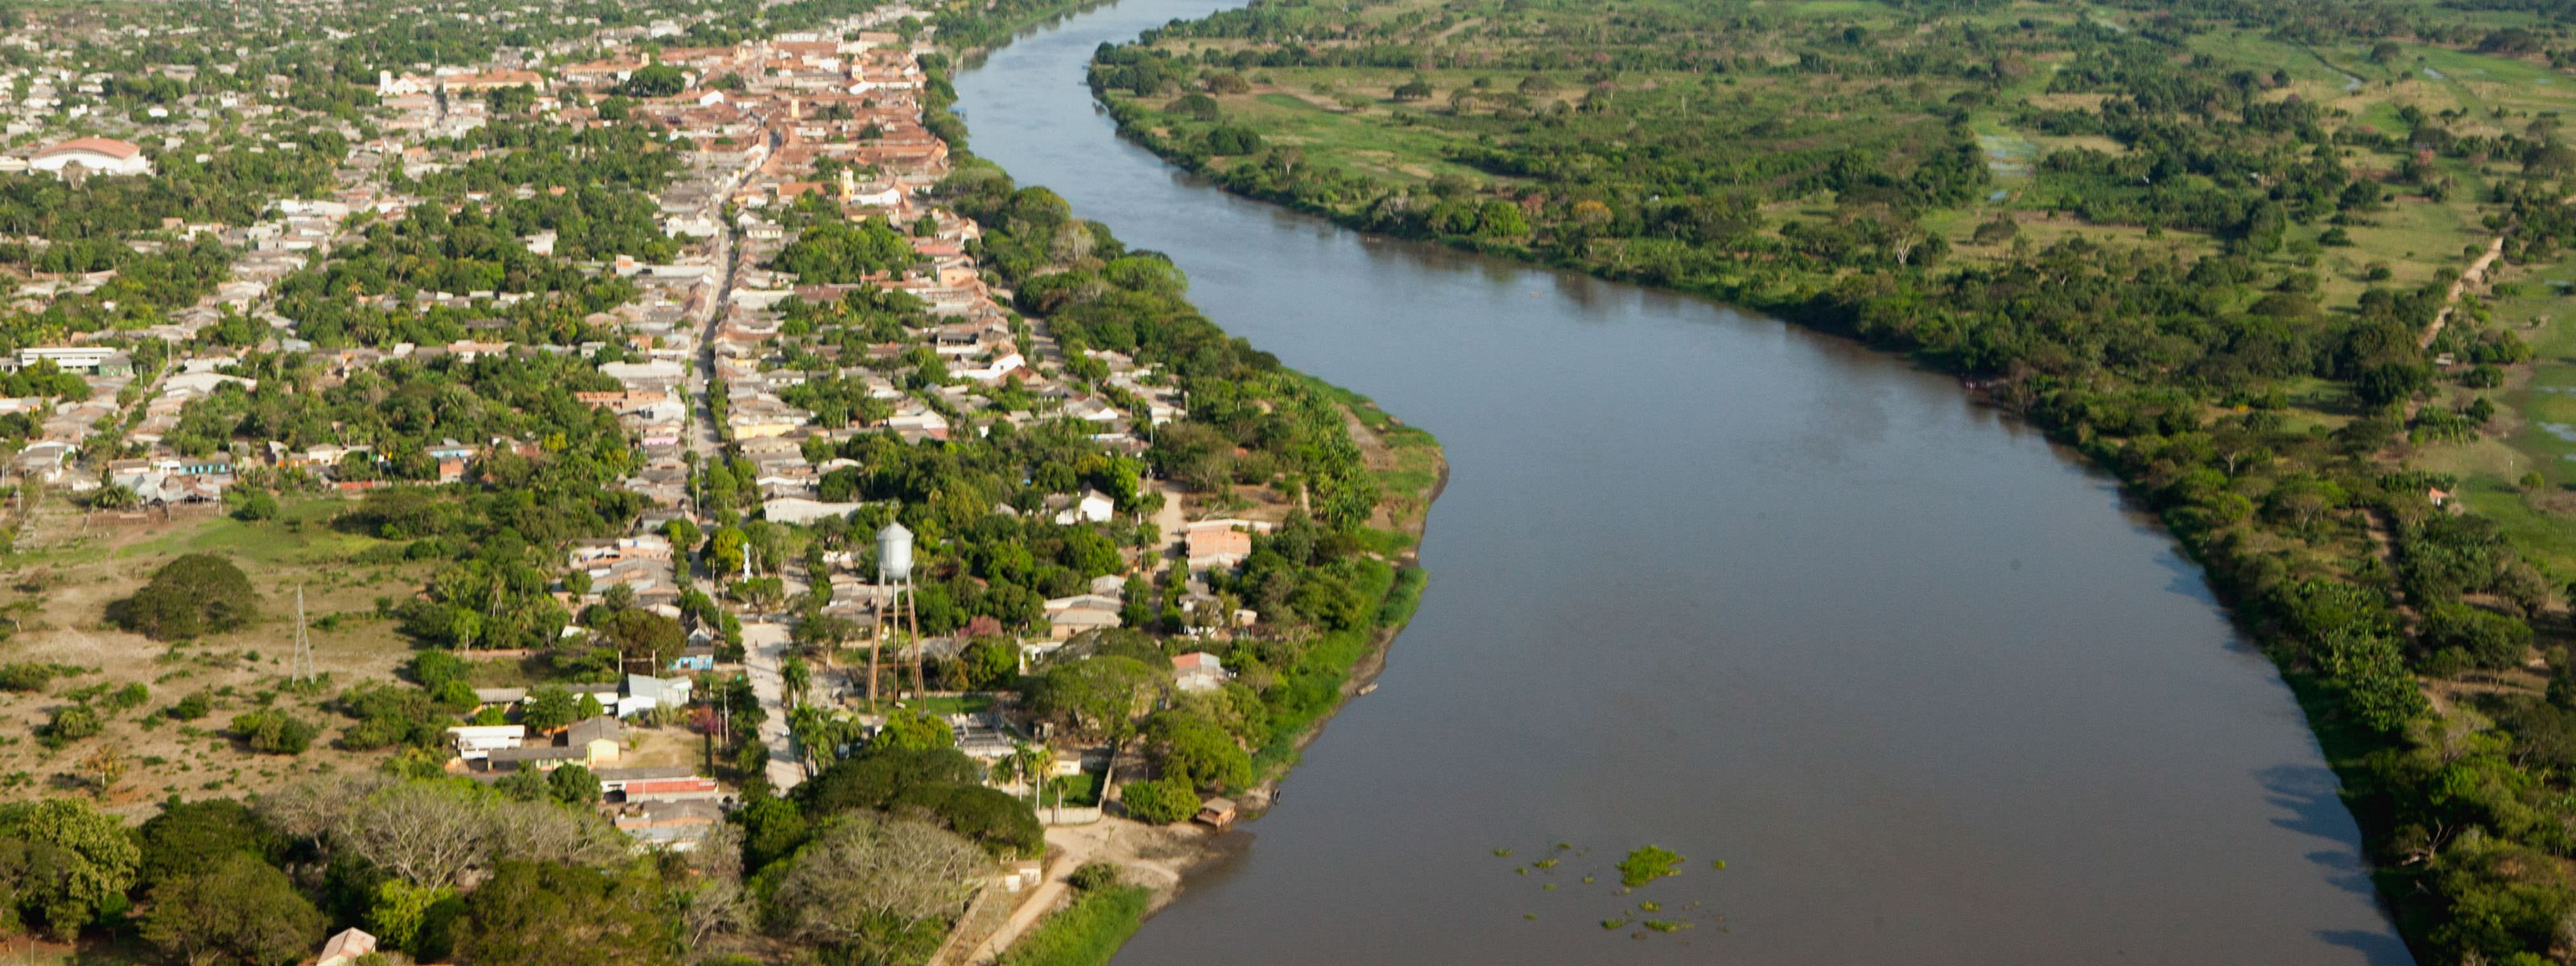 Aerial view of the town of Mompox, Bolivar